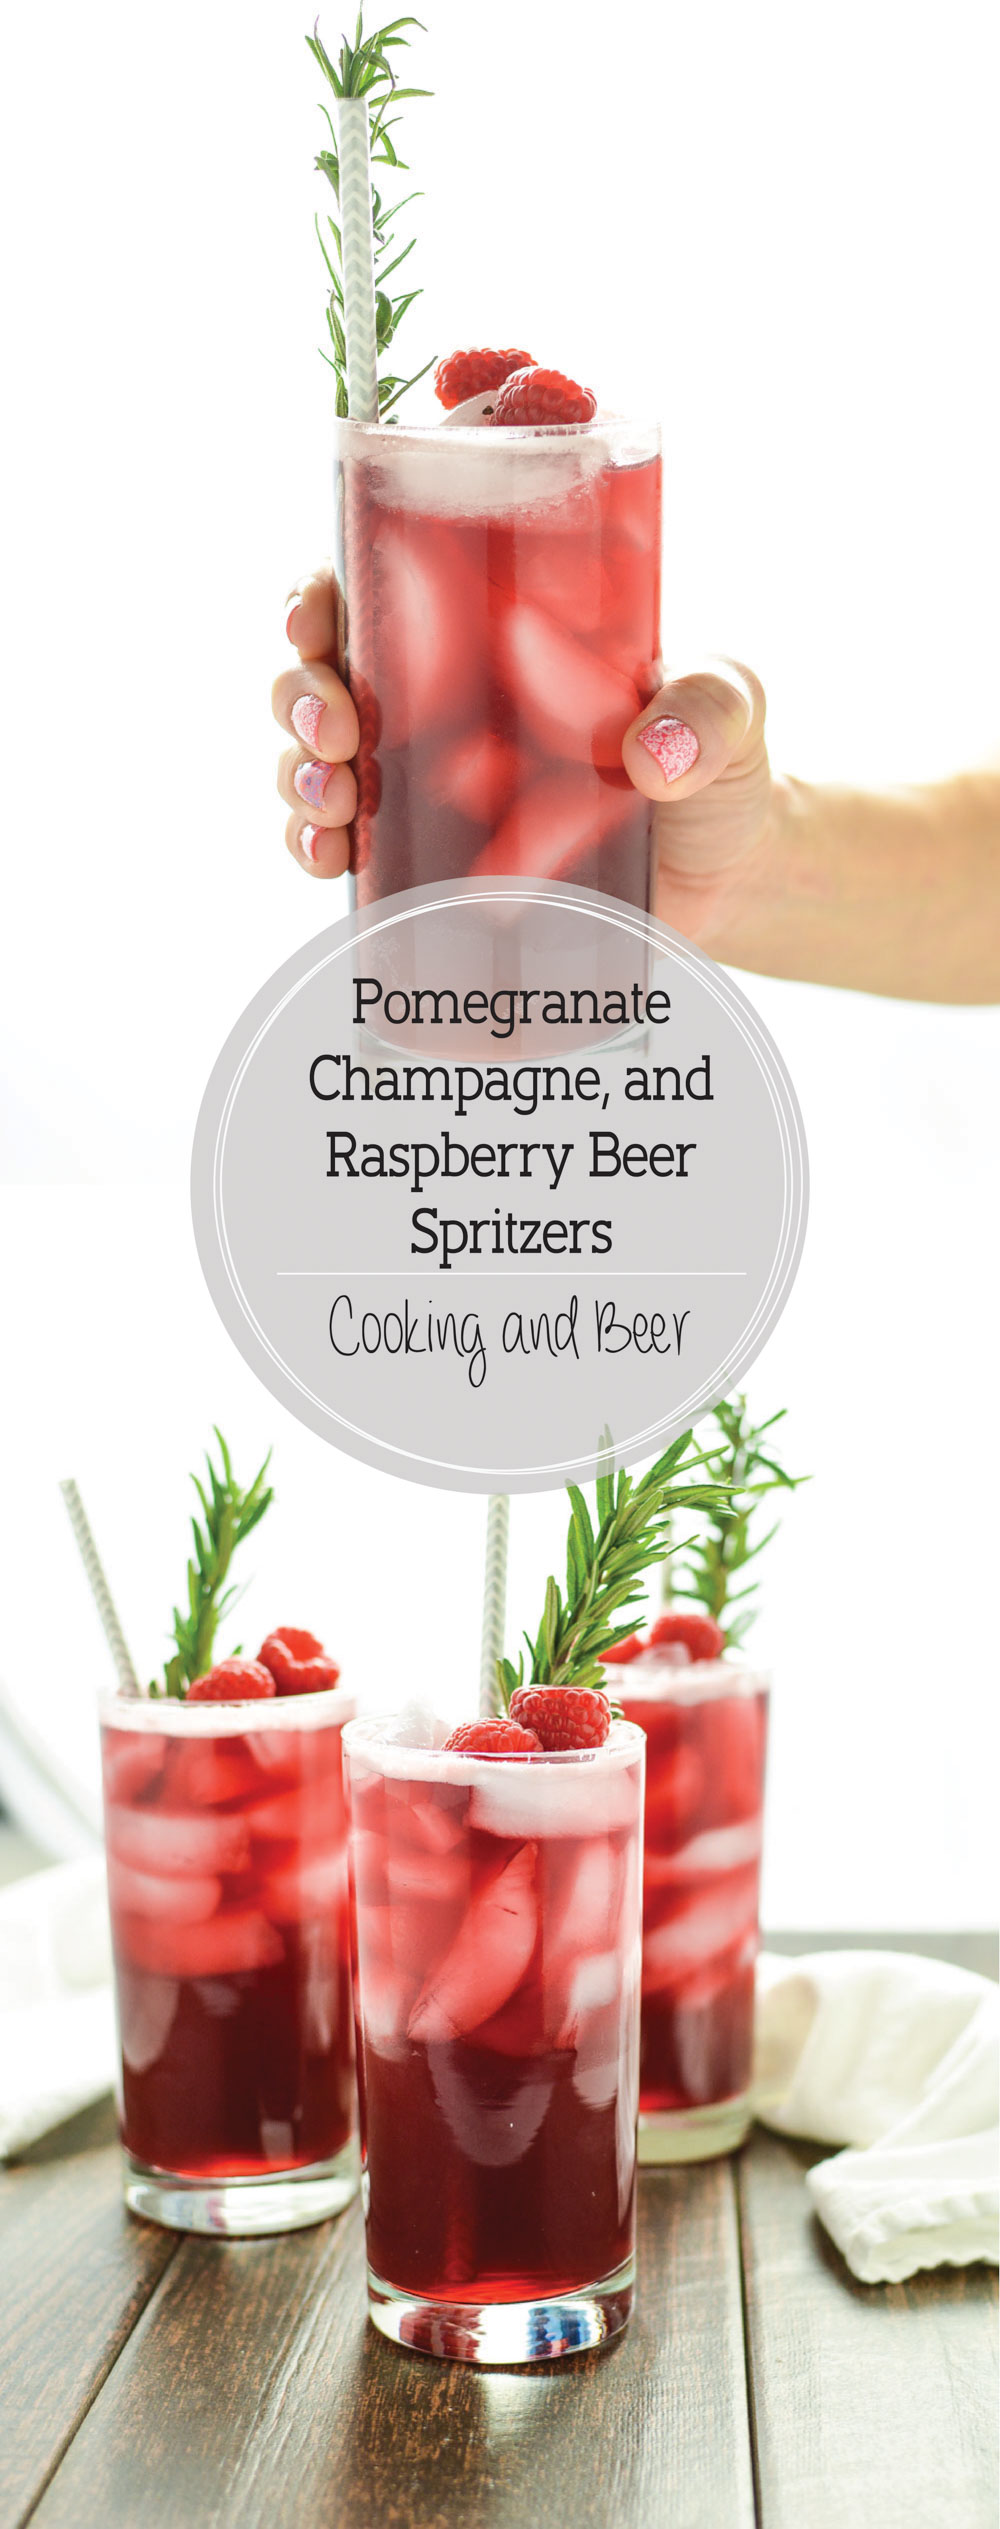 Pomegranate, Champagne and Raspberry Beer Spritzers: the perfect sweet drink to celebrate any time of year!